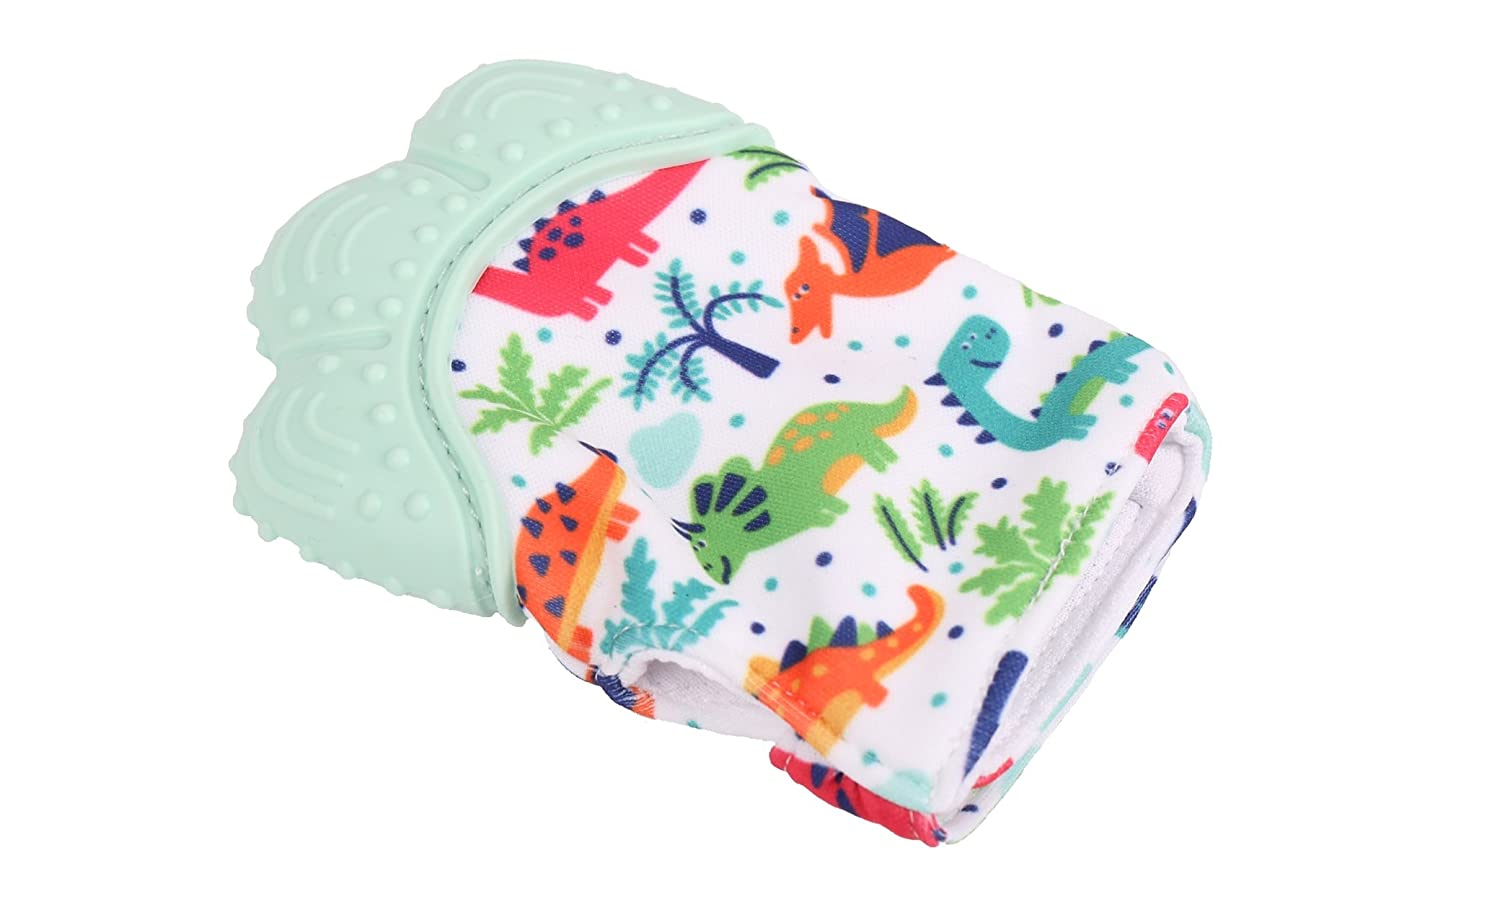 Soothing Infant Mitt Jomolly Boy Silicone Teether Toy Glove Baby Teething Mitten